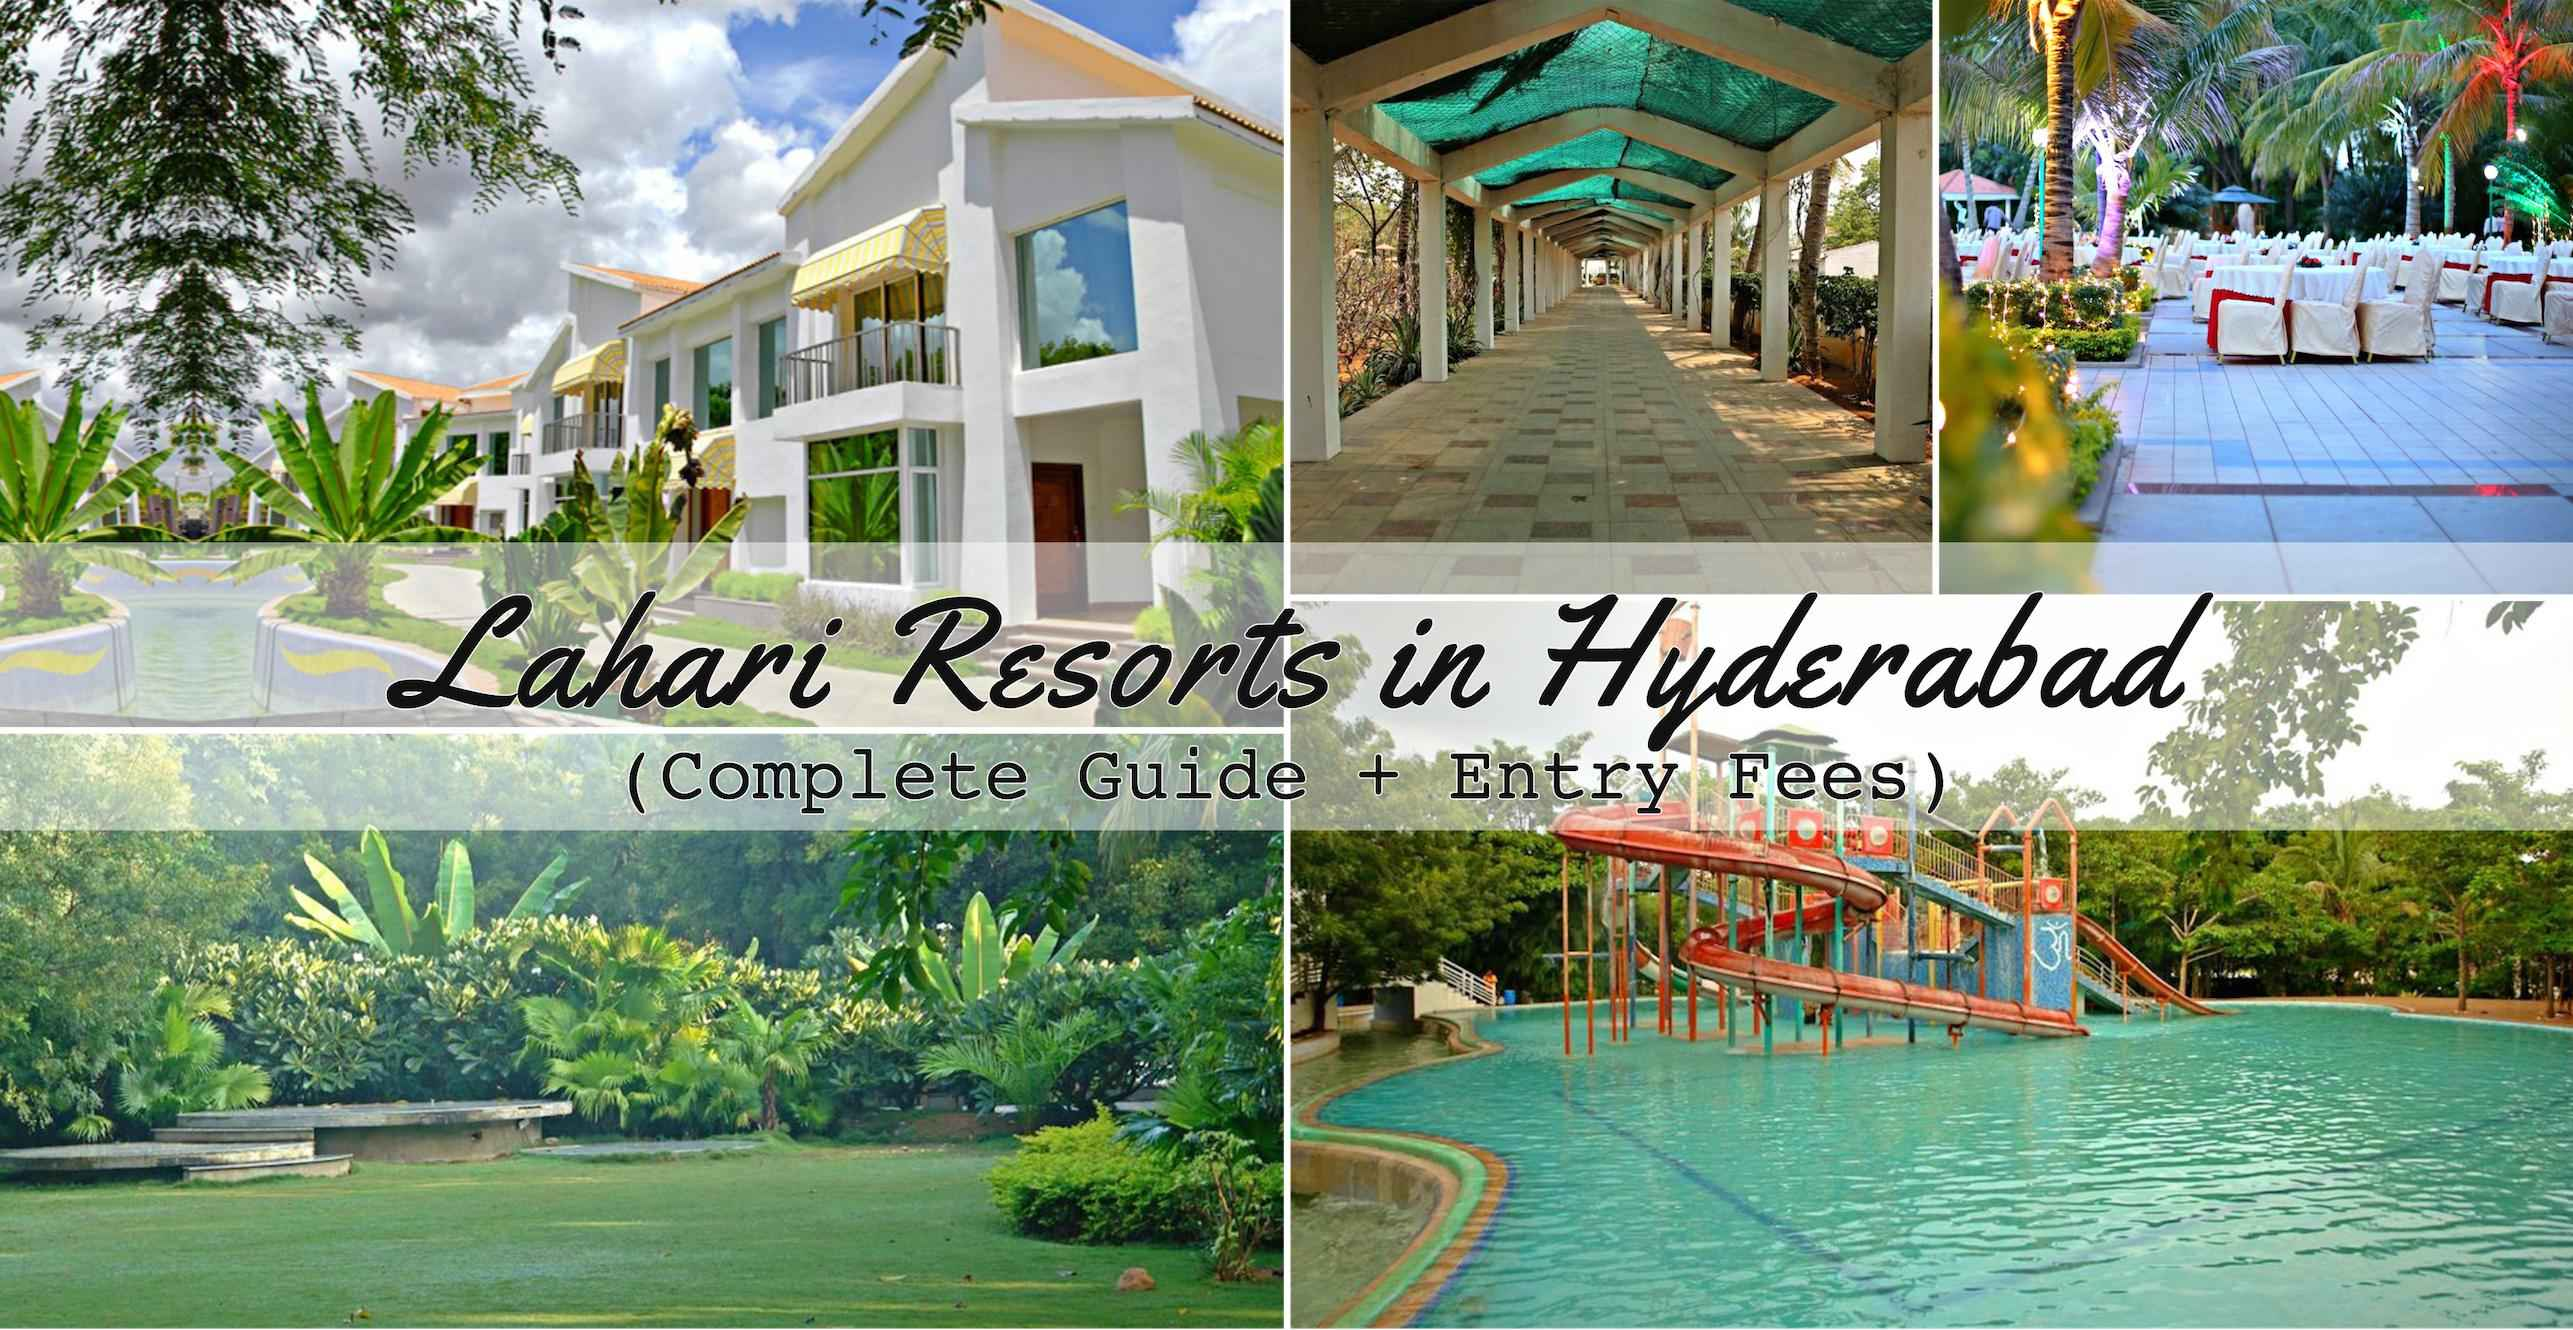 Lahari-resorts-hyderabad.jpg